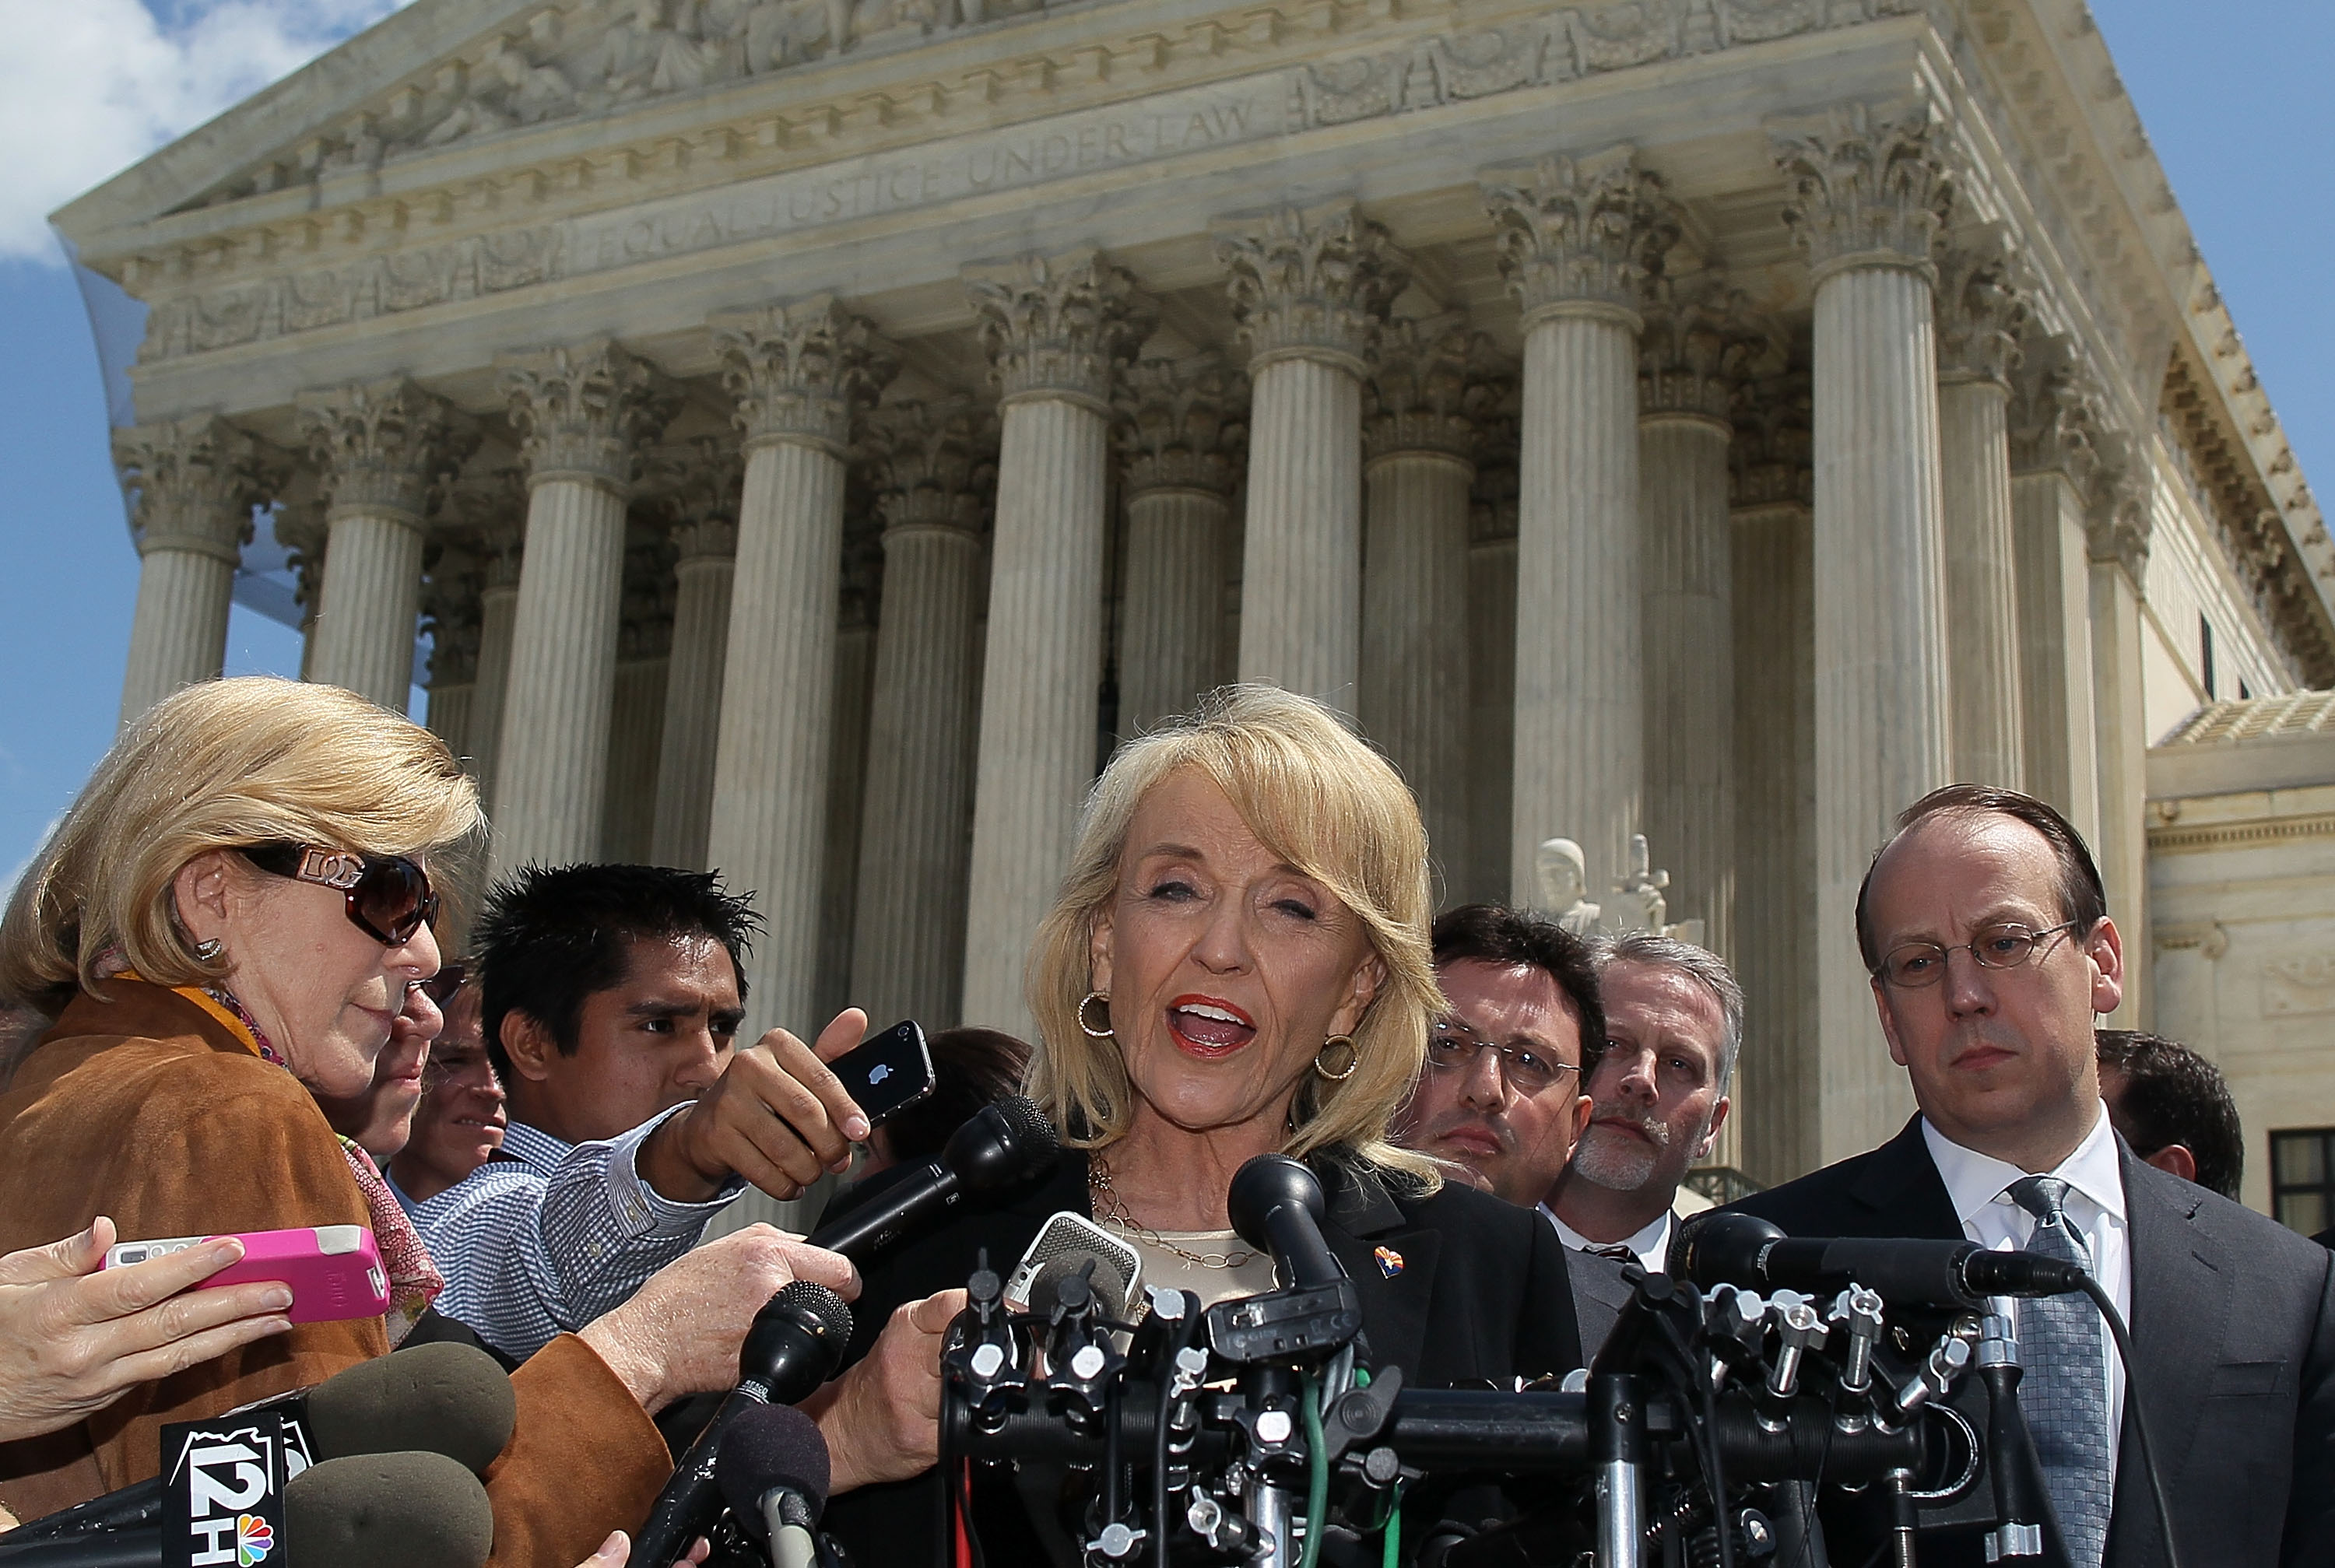 Former Arizona Gov. Jan Brewer speaks to the media after arguments in Arizona v. United States on April 25, 2012 at the Supreme Court. (Mark Wilson/Getty Images)